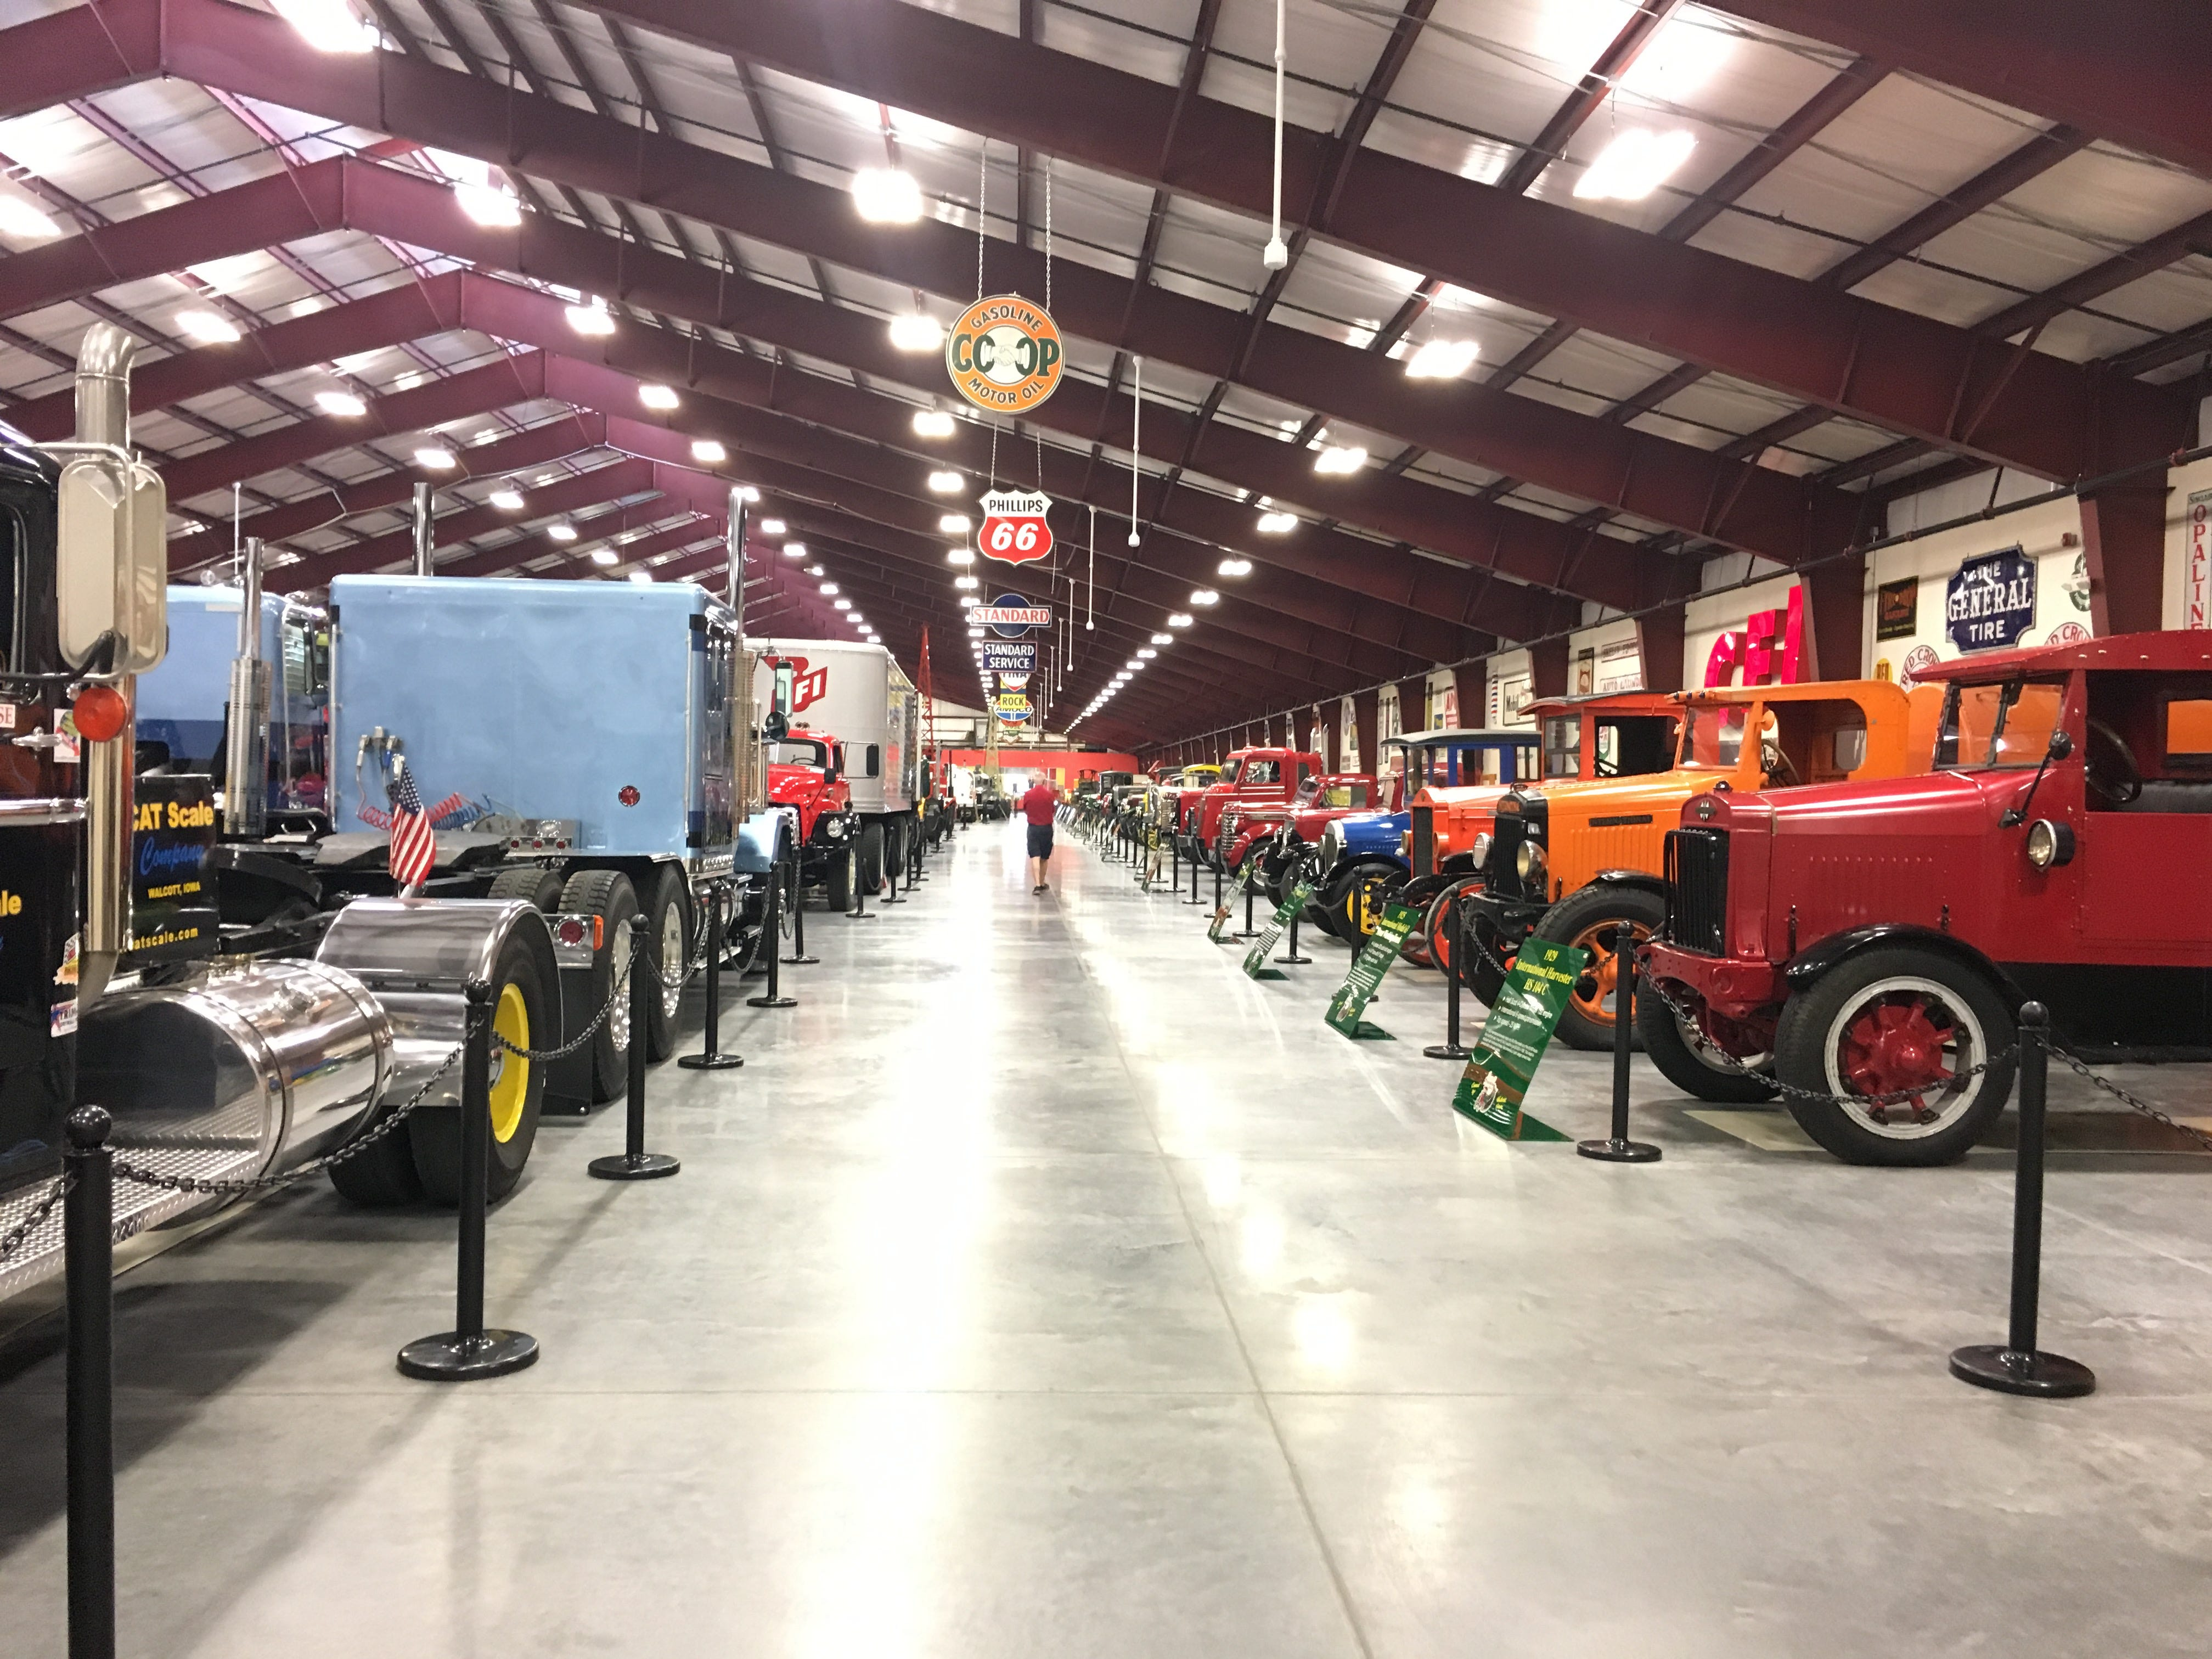 Trucks are on display at the Iowa 80 Trucking Museum.